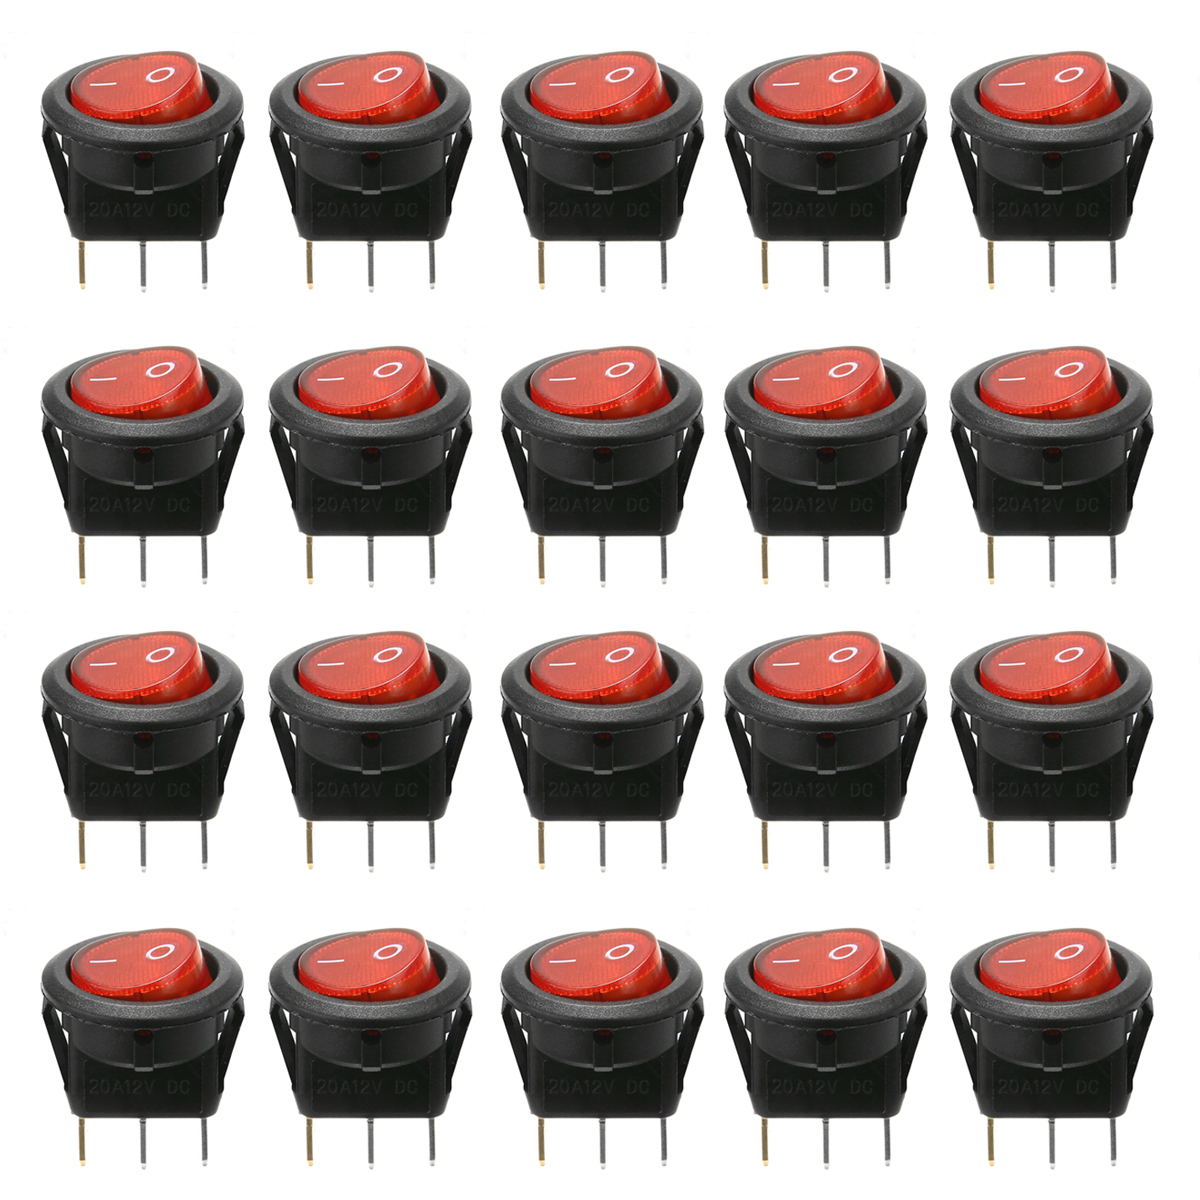 New Arrival 20Pcs/set 12V Car Boat Push Button Switch Car Button Lights ON/OFF Round Rocker Switch Dash Boat